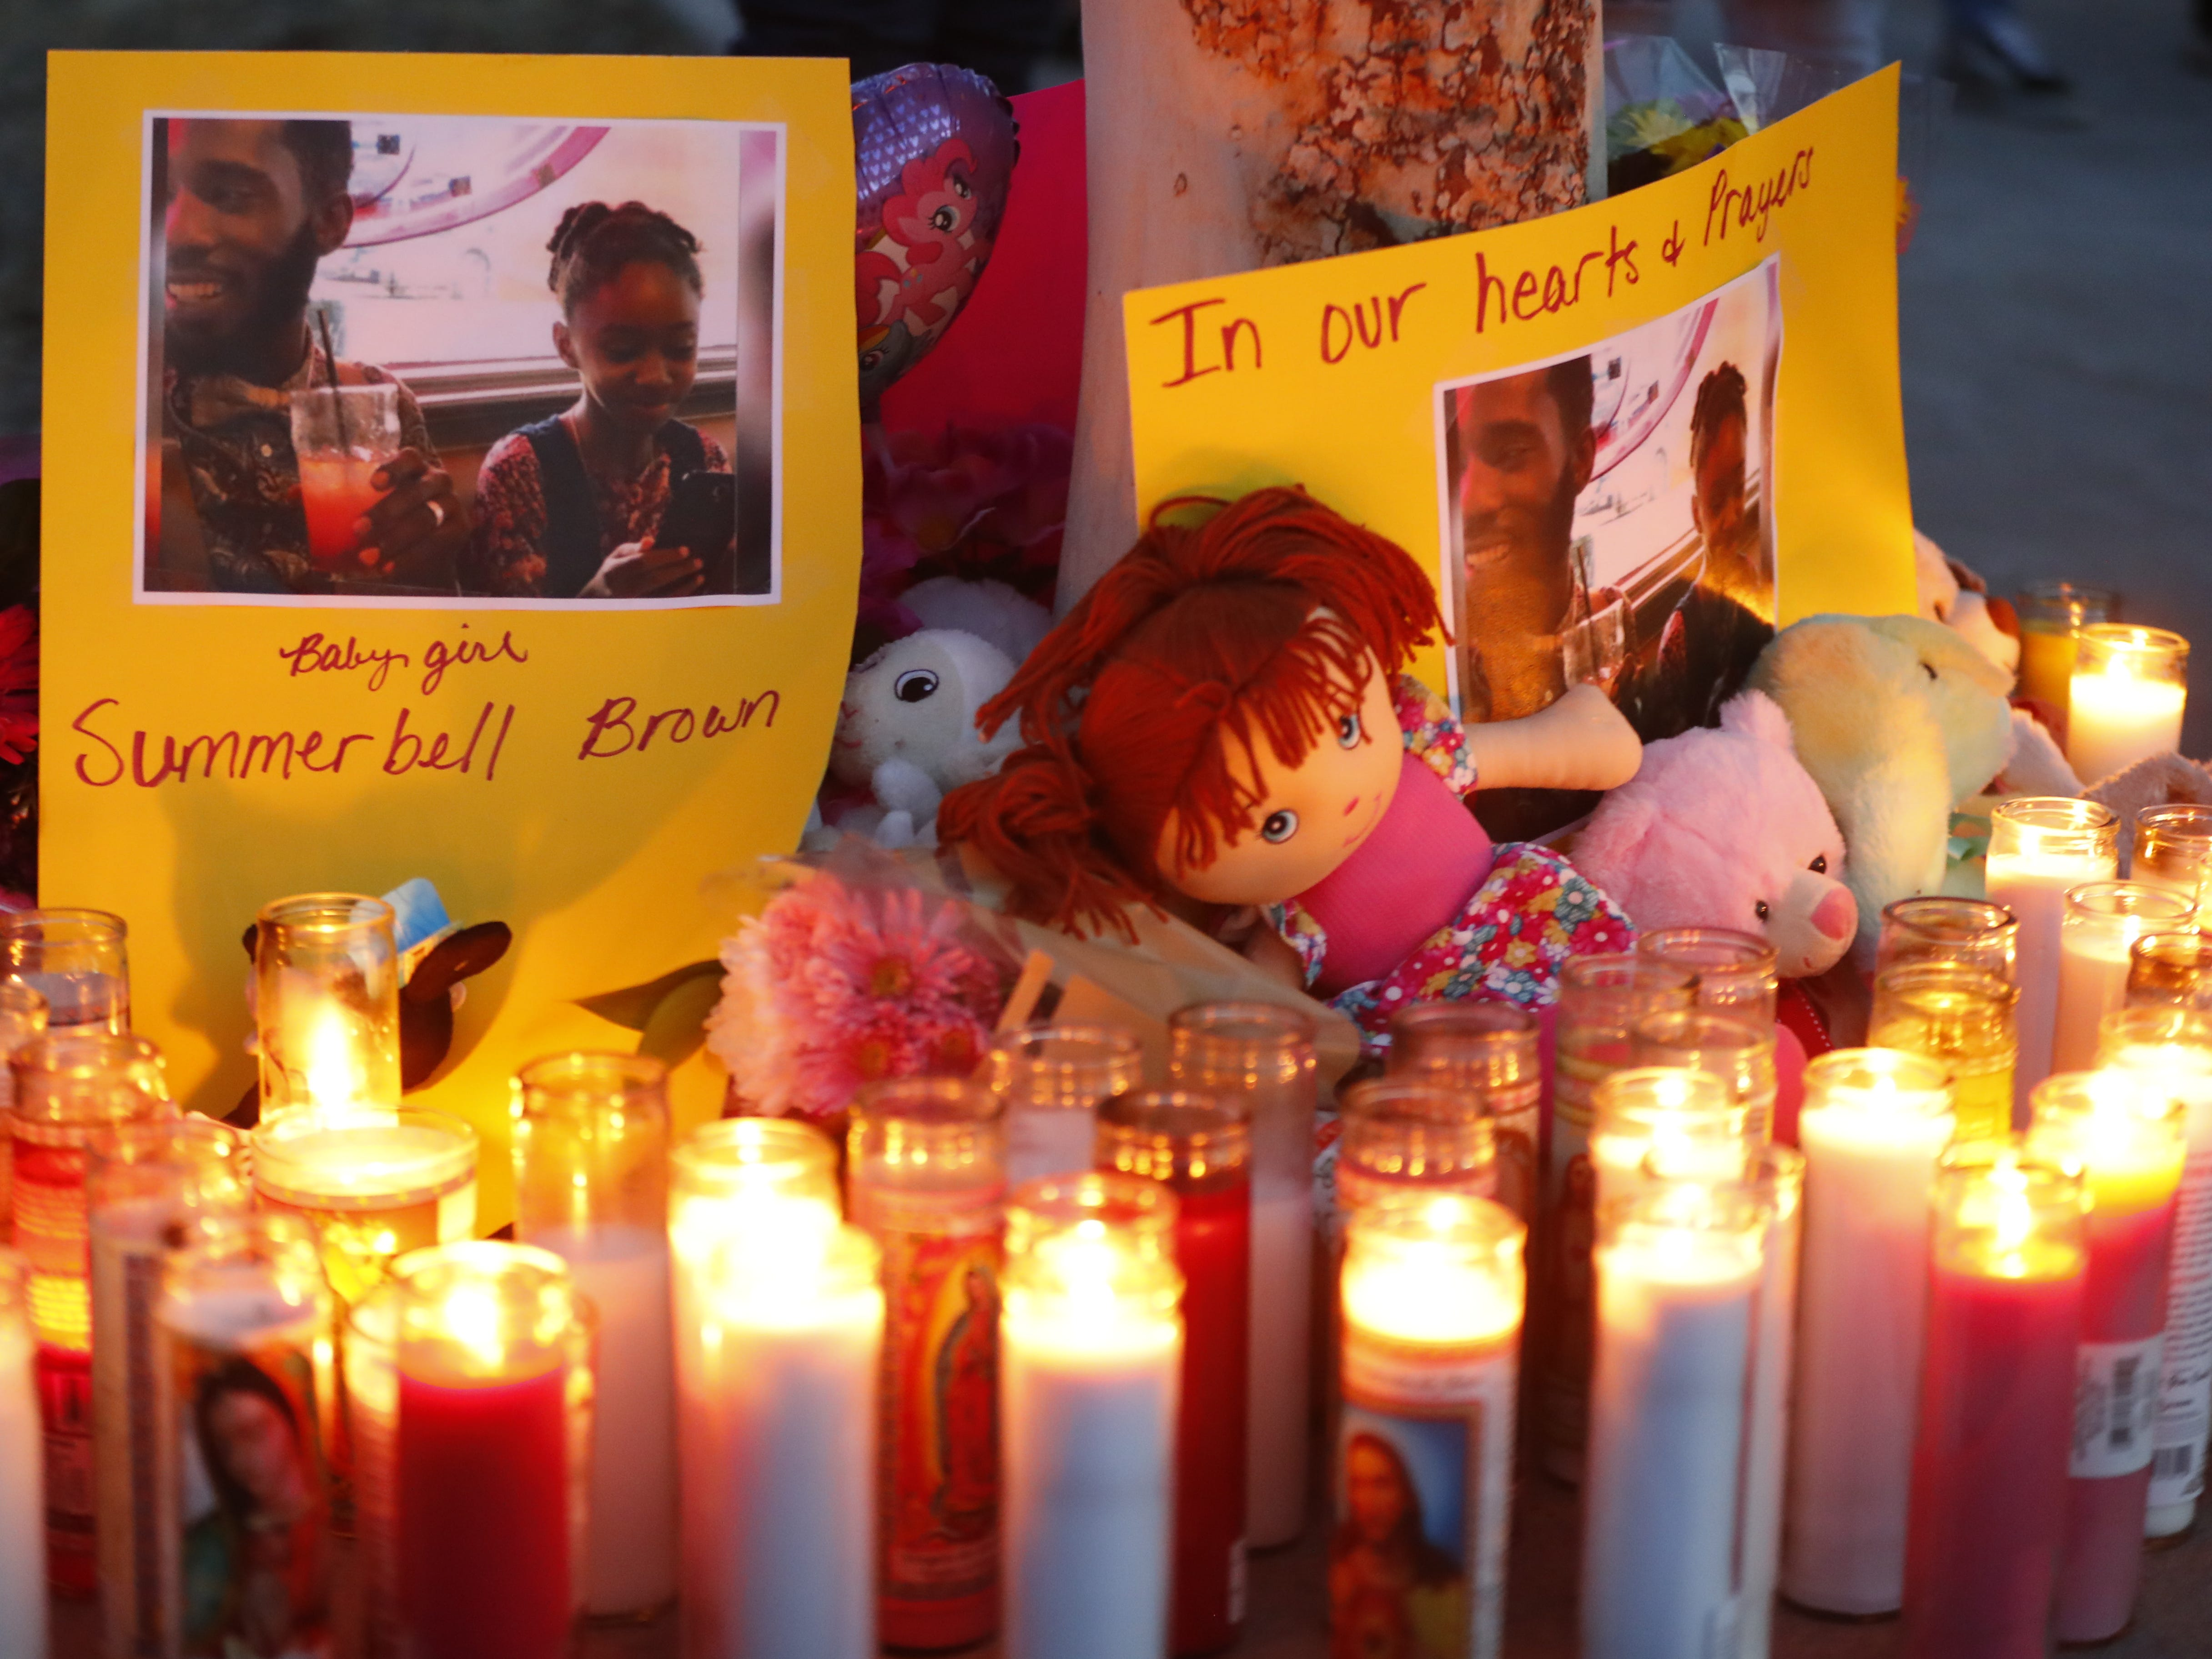 Candles illuminate posters at a vigil for Summer Bell Brown on April 5, 2019, outside her home where she was shot and killed in Phoenix. Brown was 10 years old.